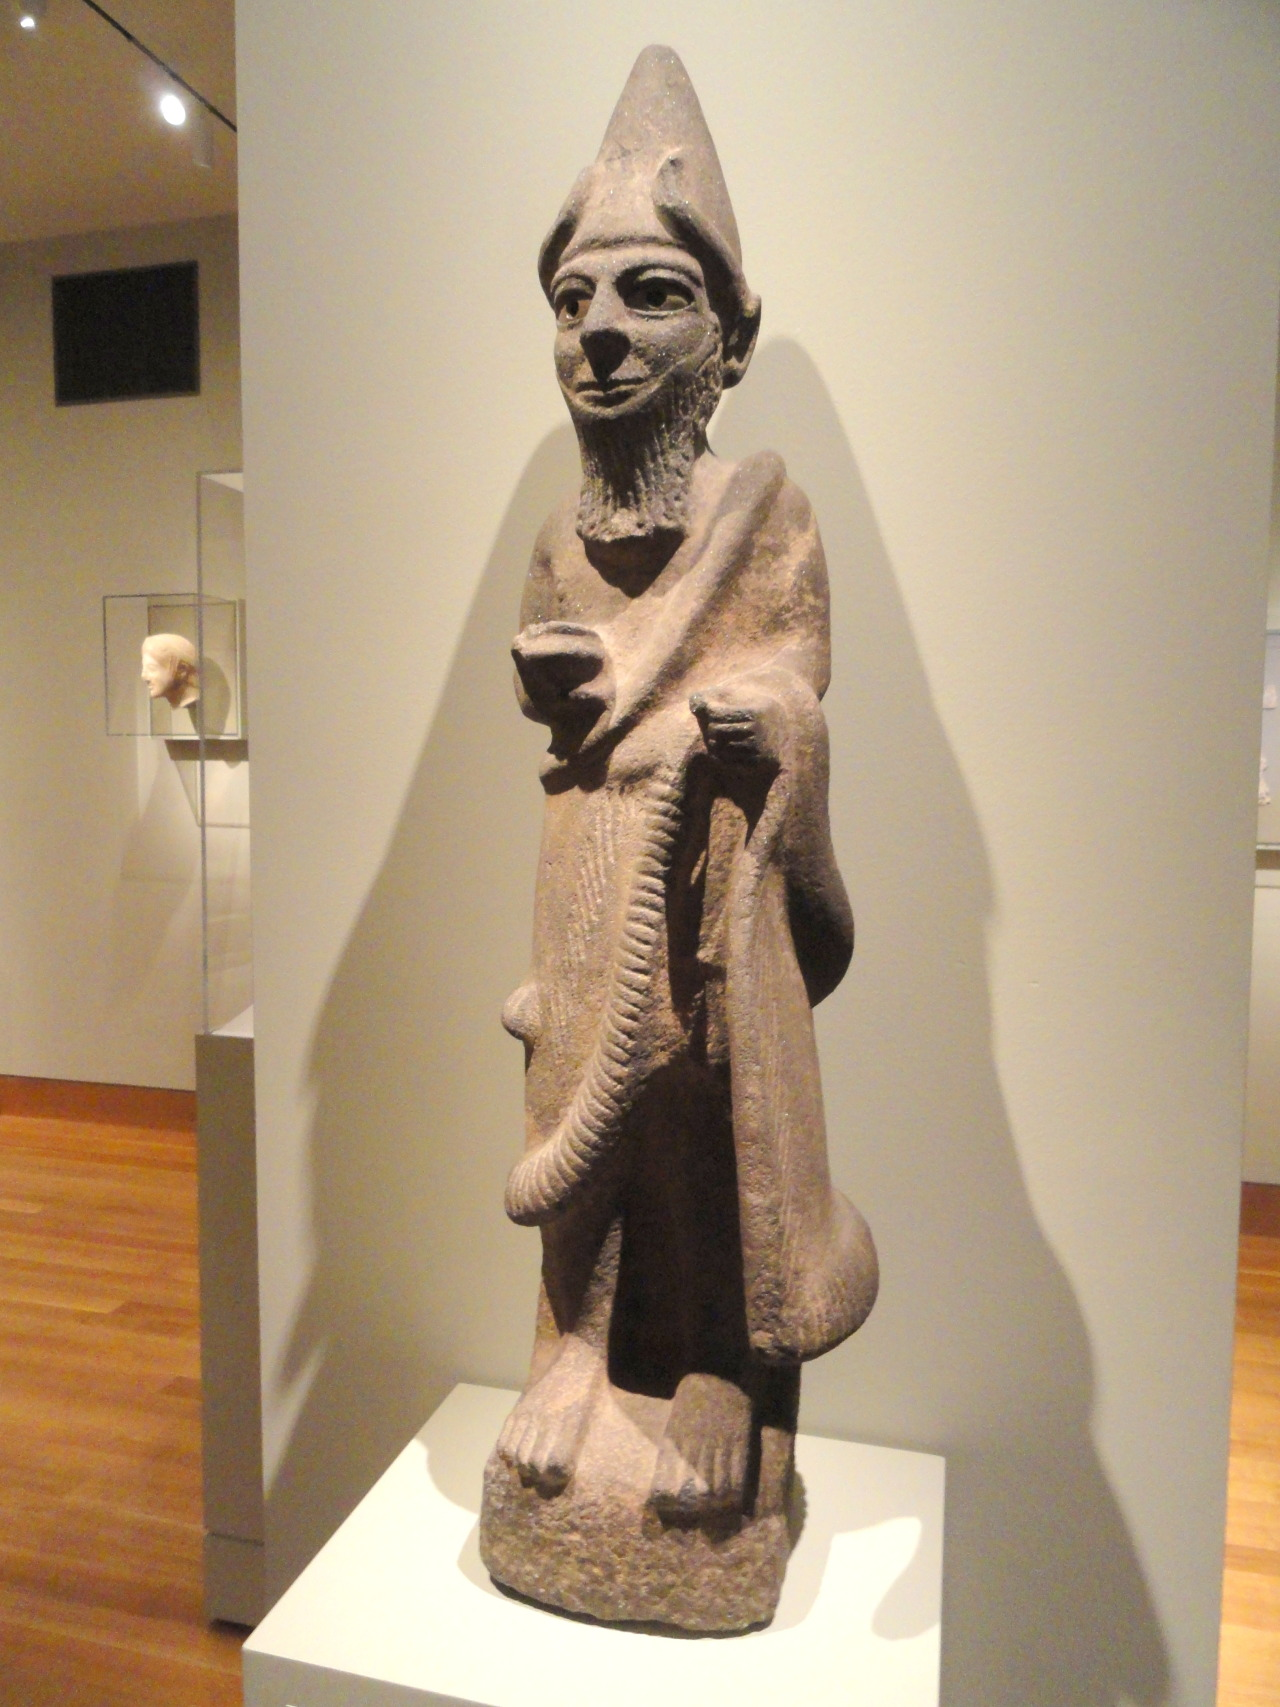 Priest-King or Diety, about 1600 BC, Hittite, North Syria, basalt with bone eyes. Courtesy & currently located at the Cleveland Museum of Art, Ohio, USA. Photo taken by Daderot